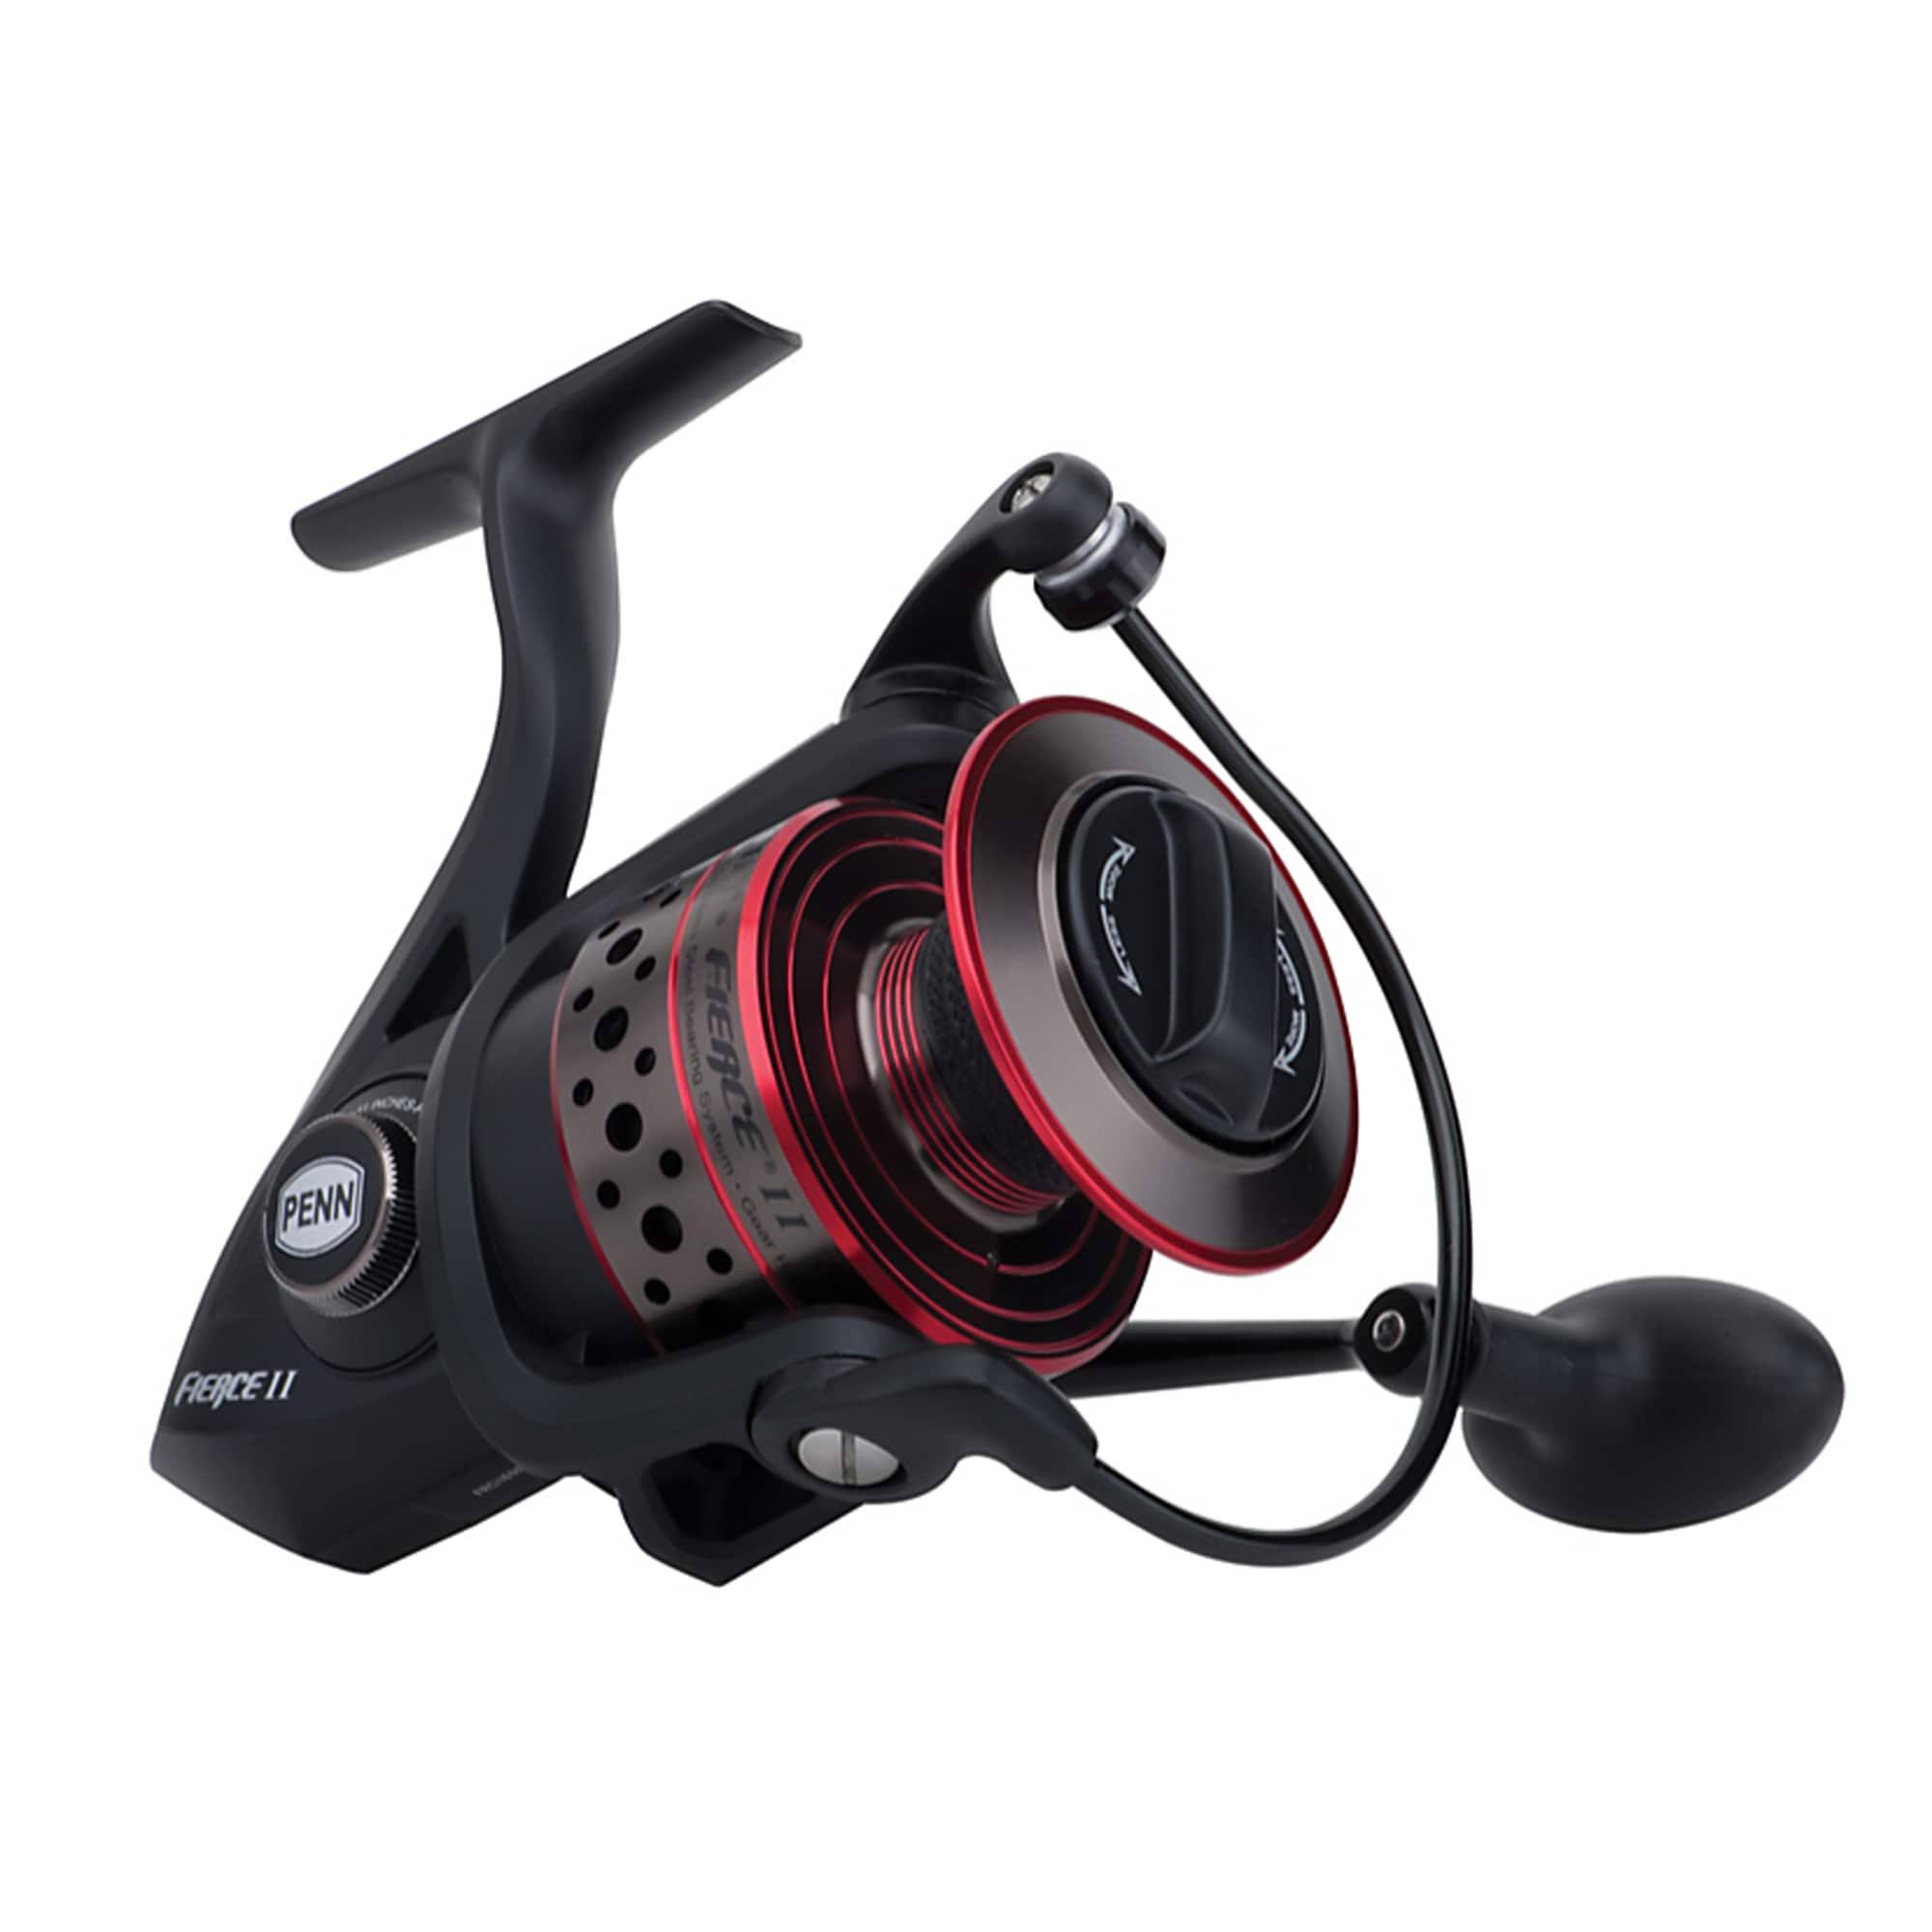 Penn FRCII1000 Fierce II Spinning Fishing Reel